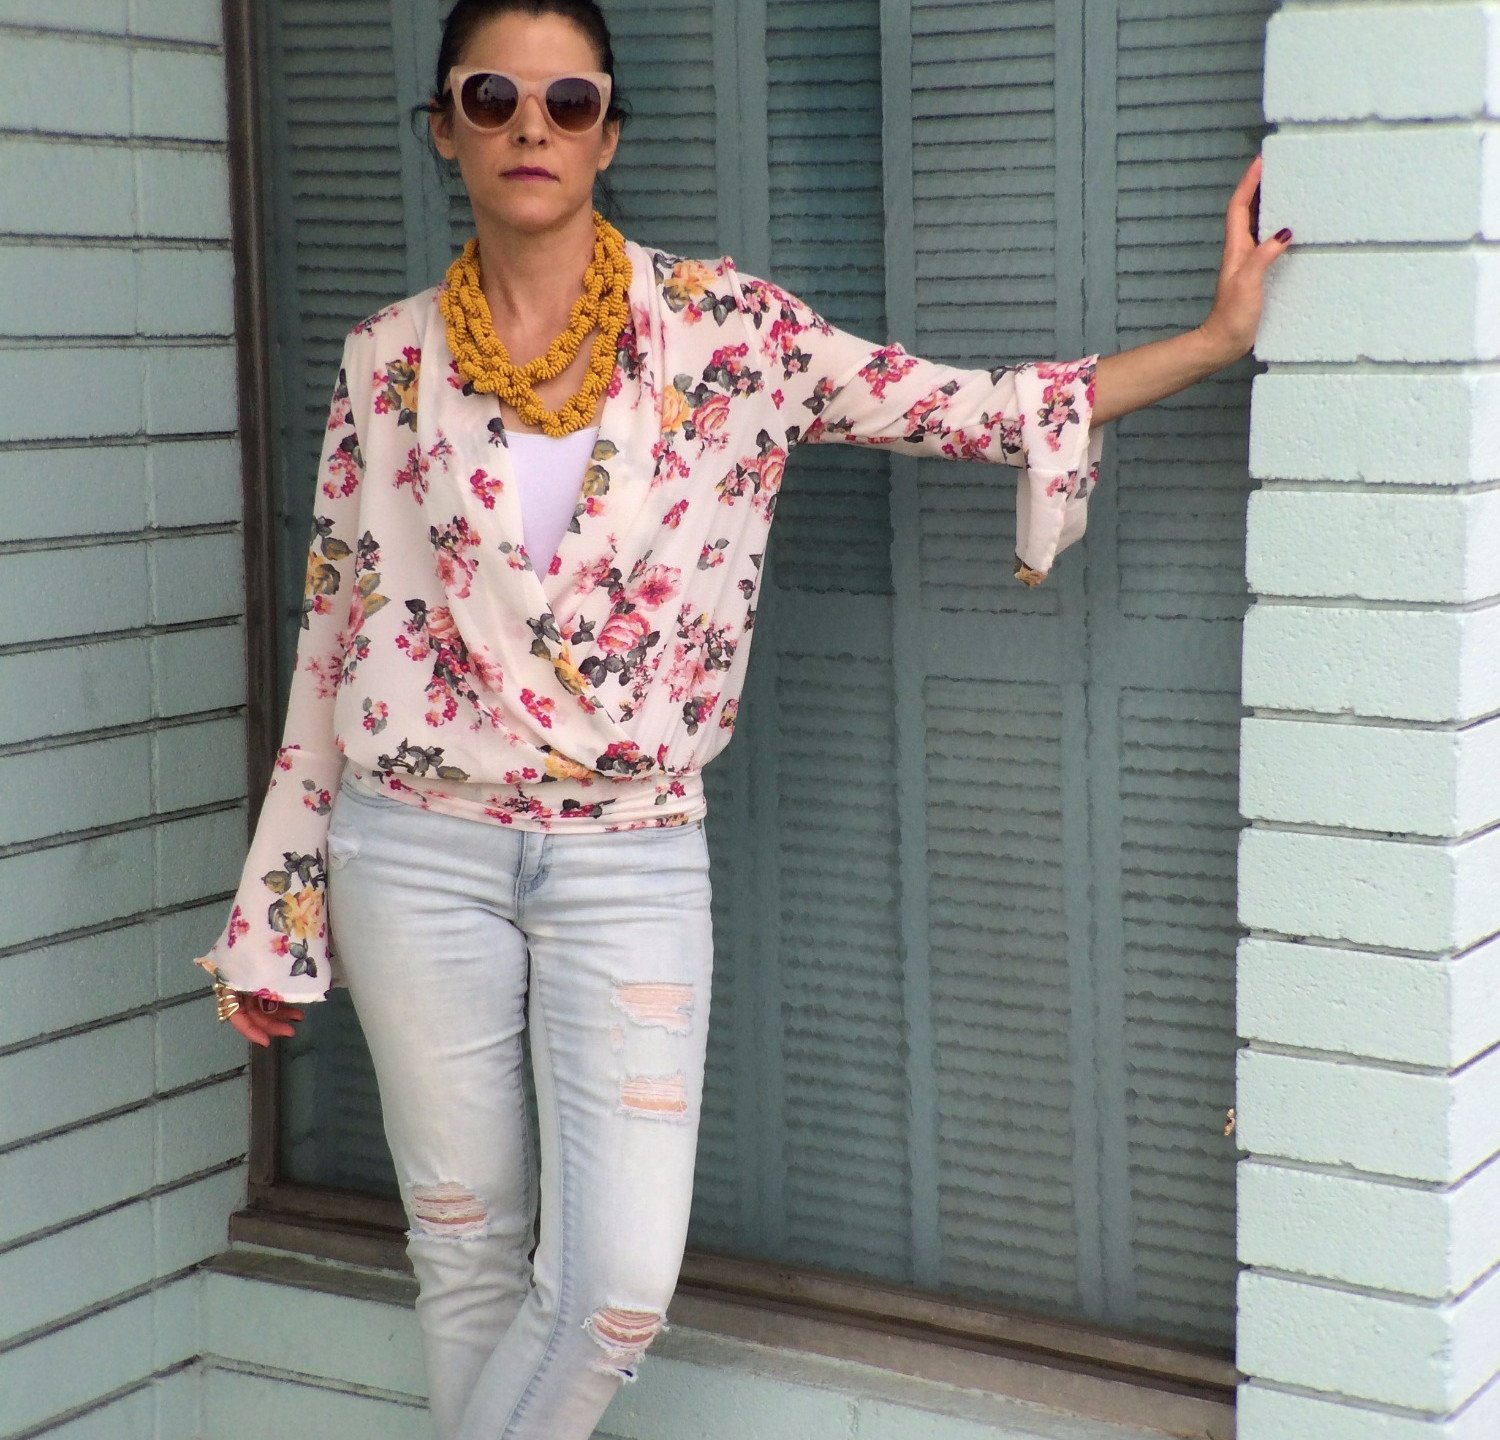 with a pink floral top